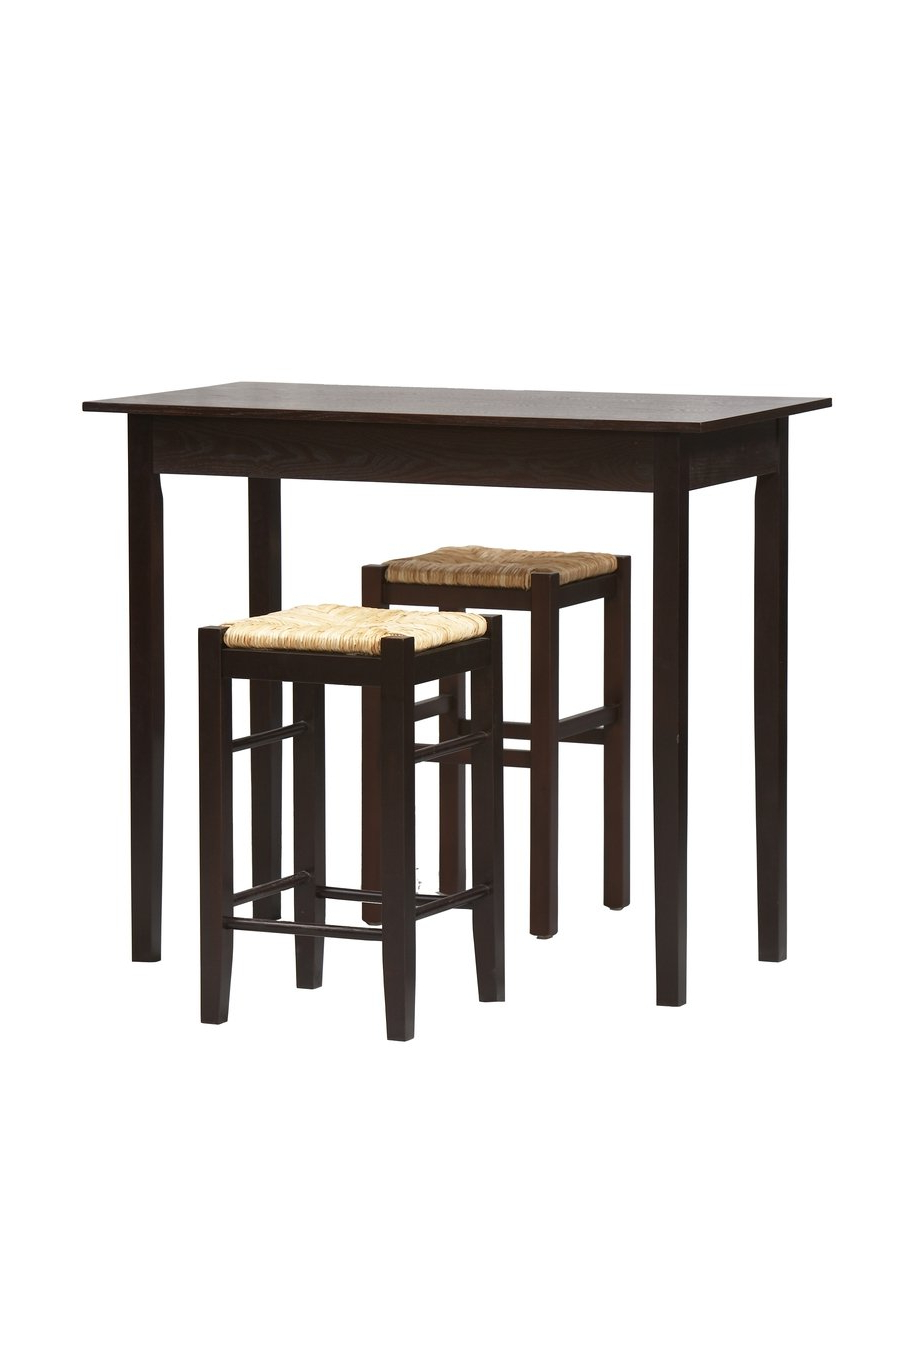 Most Recently Released 3 Pc Counter Dining Set In Espresso Finish Intended For Tappahannock 3 Piece Counter Height Dining Sets (View 9 of 20)